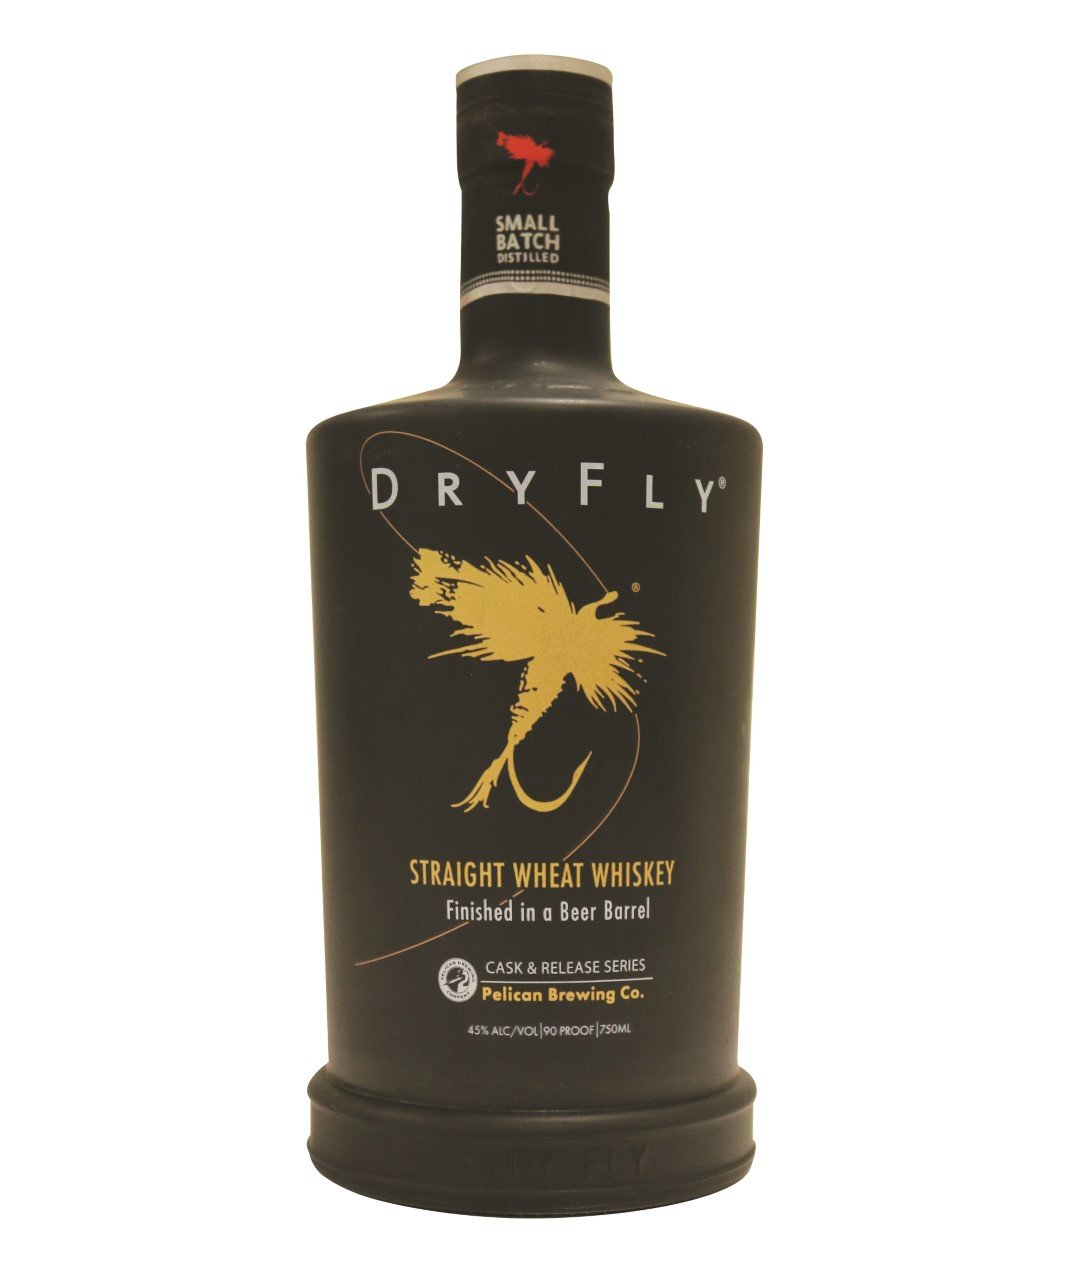 Dry Fly Distilling Straight Wheat Whiskey Finished in a Beer Barrel